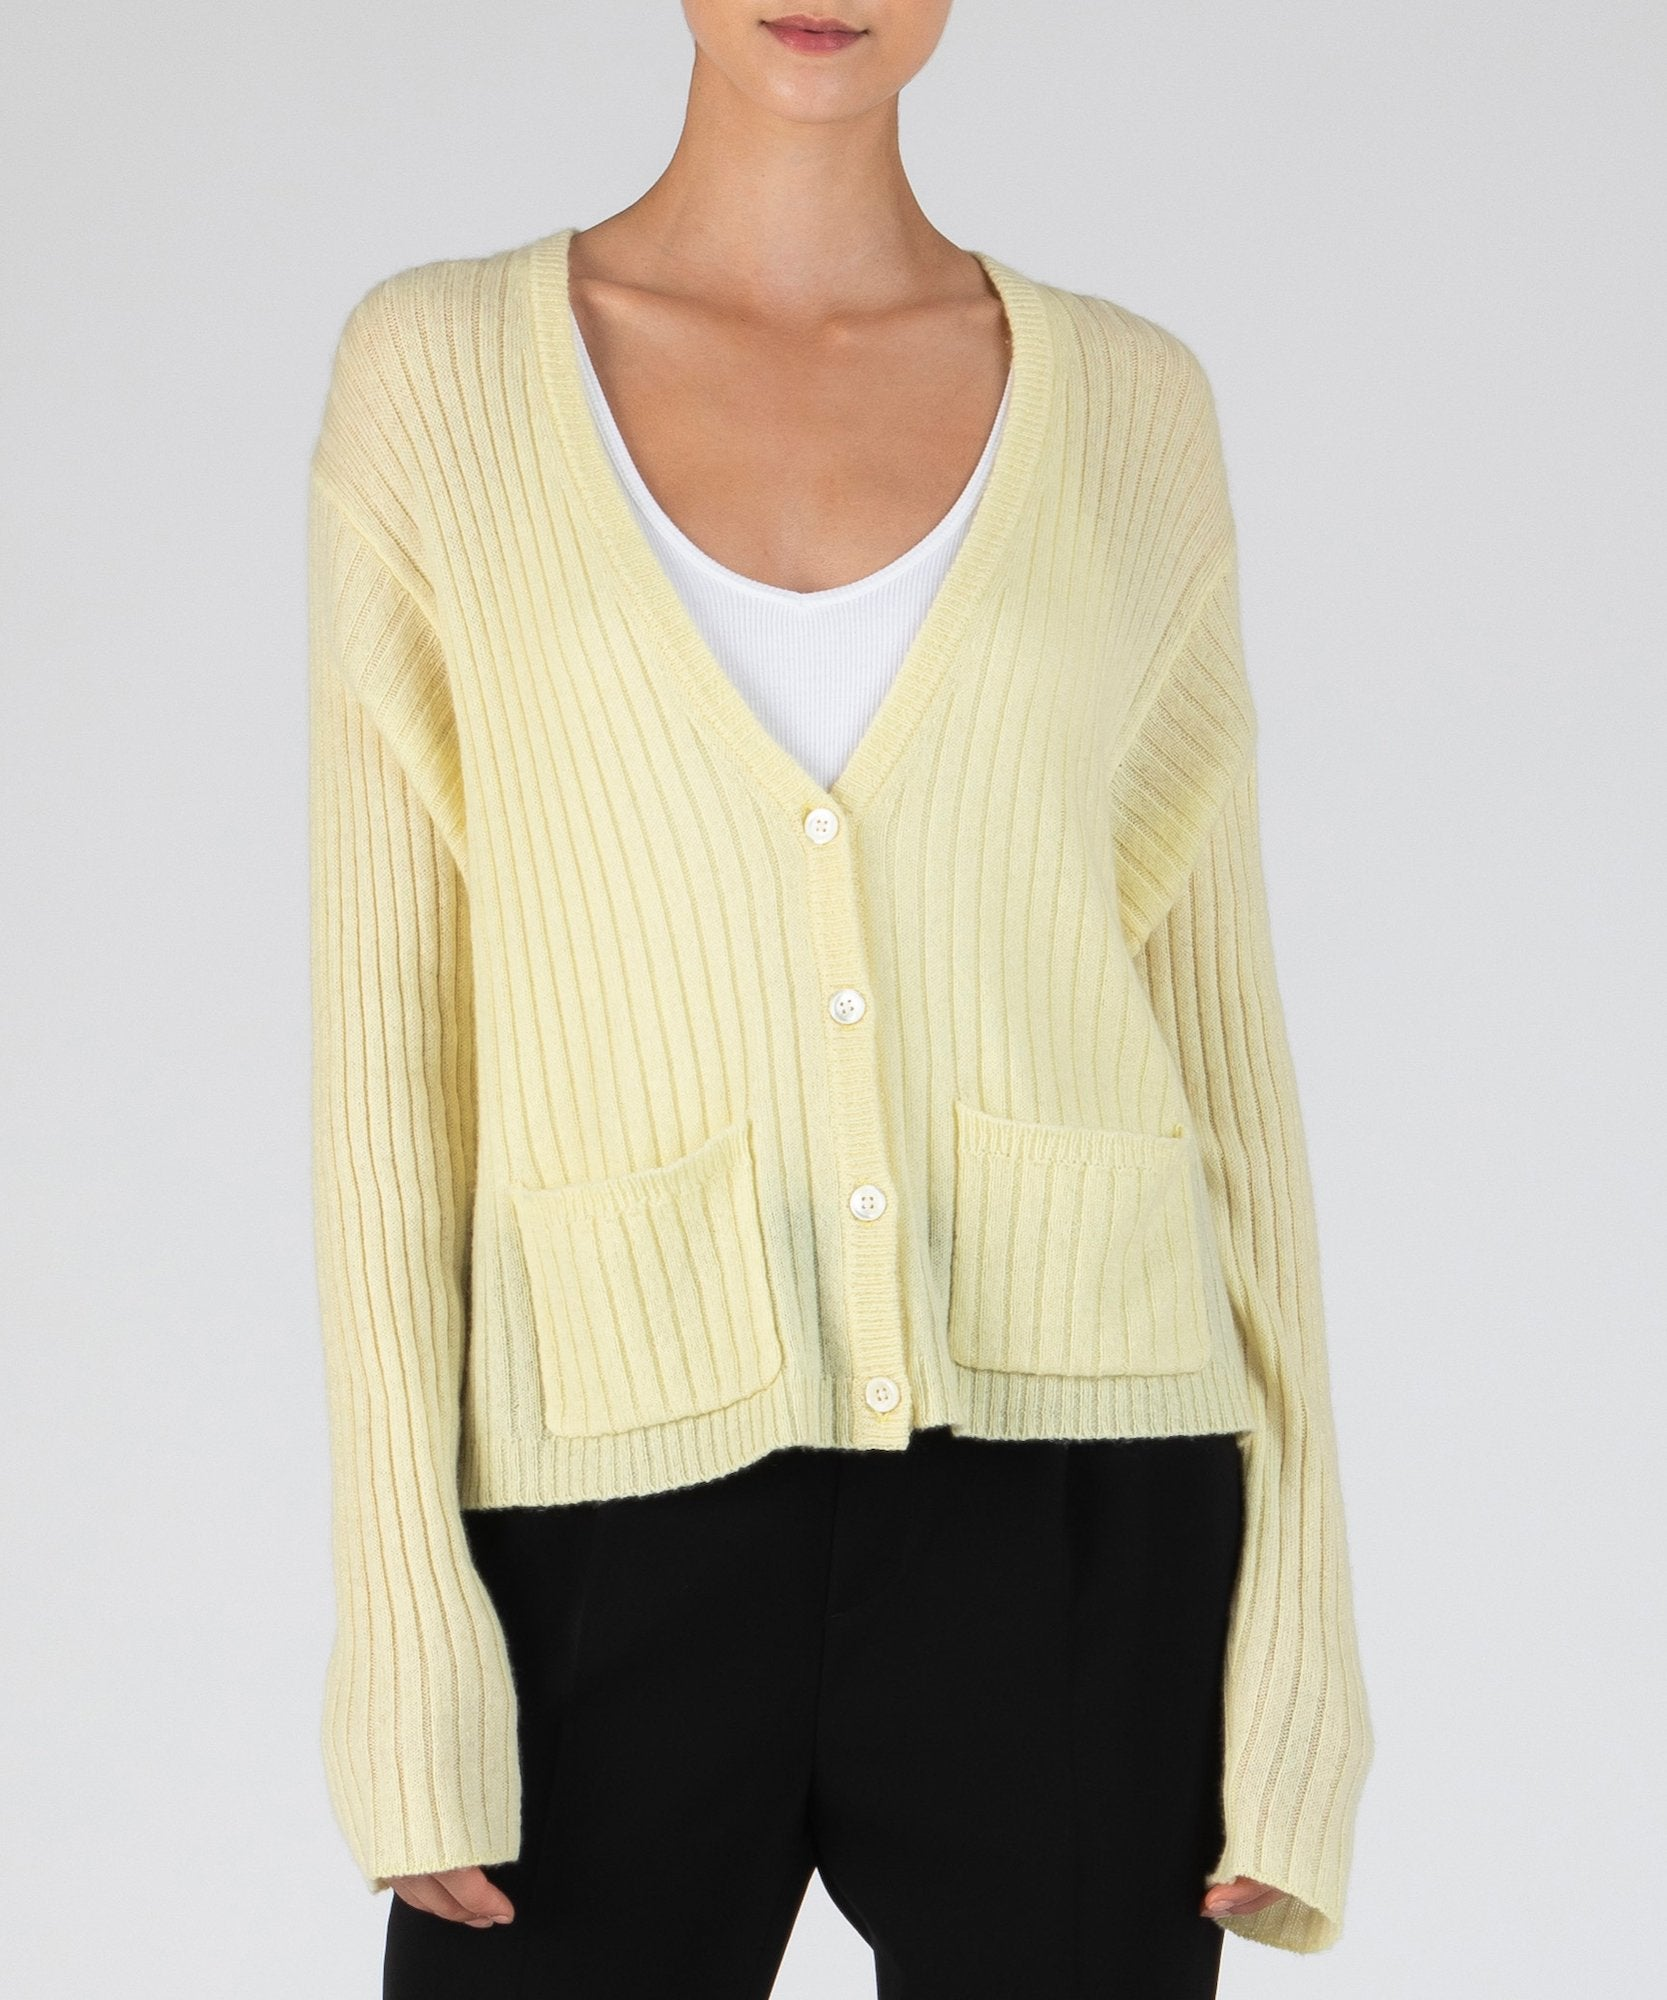 Yellow Cashmere Deep V-Neck Cardigan - Women's Luxe Sweater by ATM Anthony Thomas Melillo